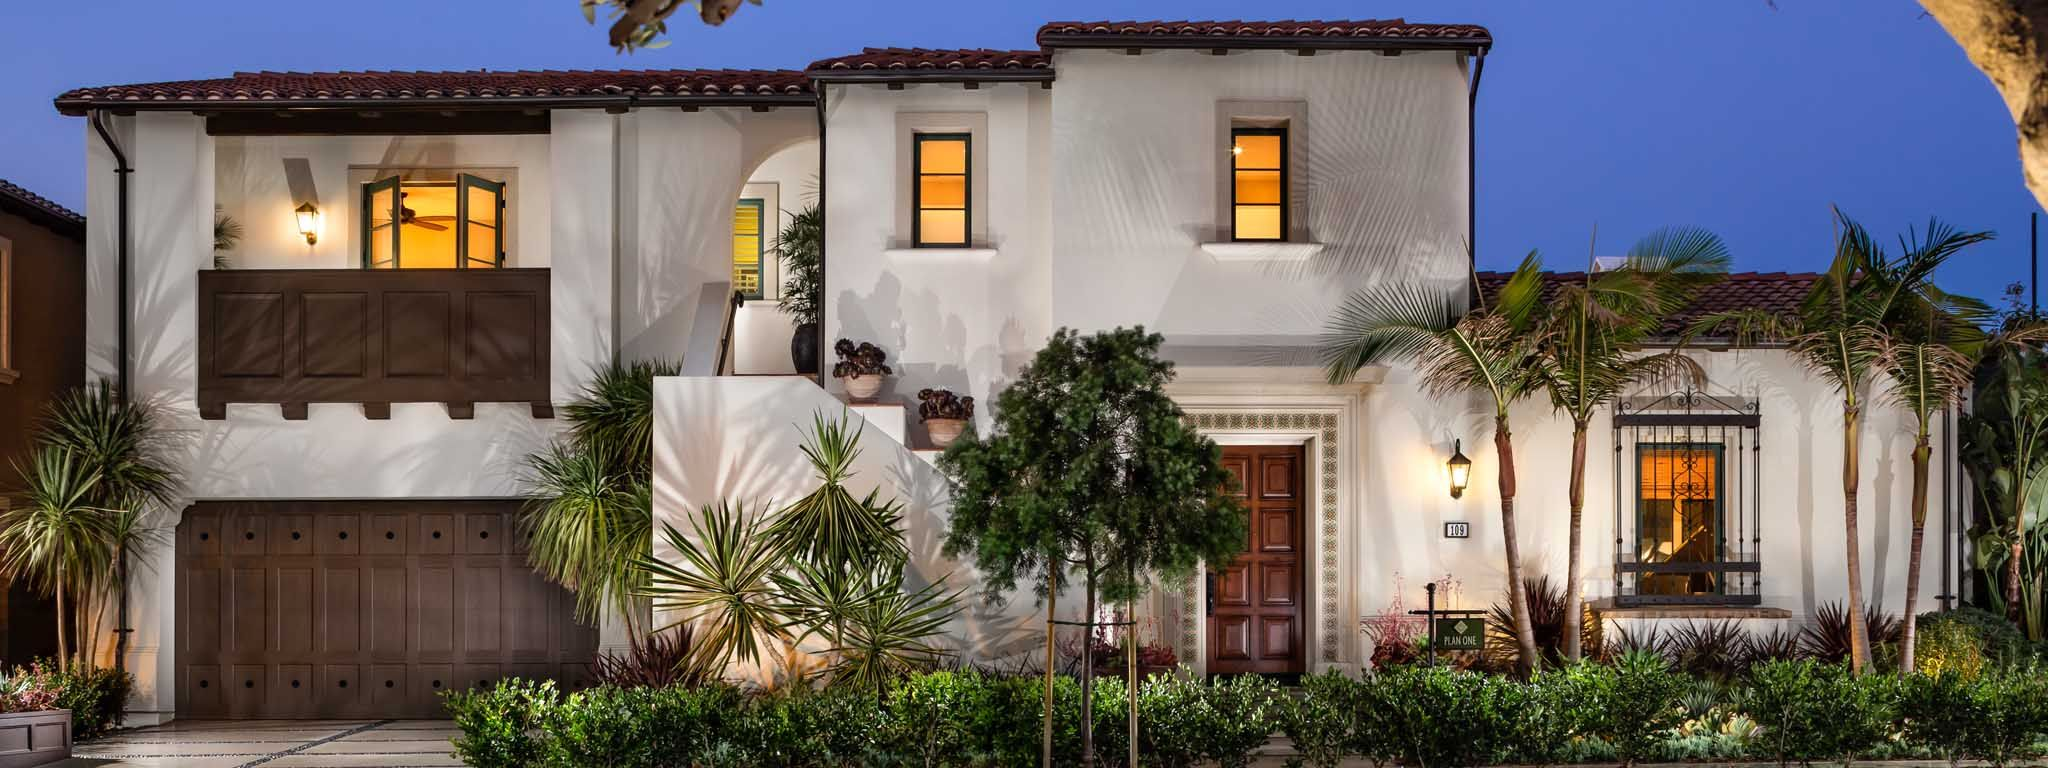 orange county new homes - 829 homes for sale | new home source